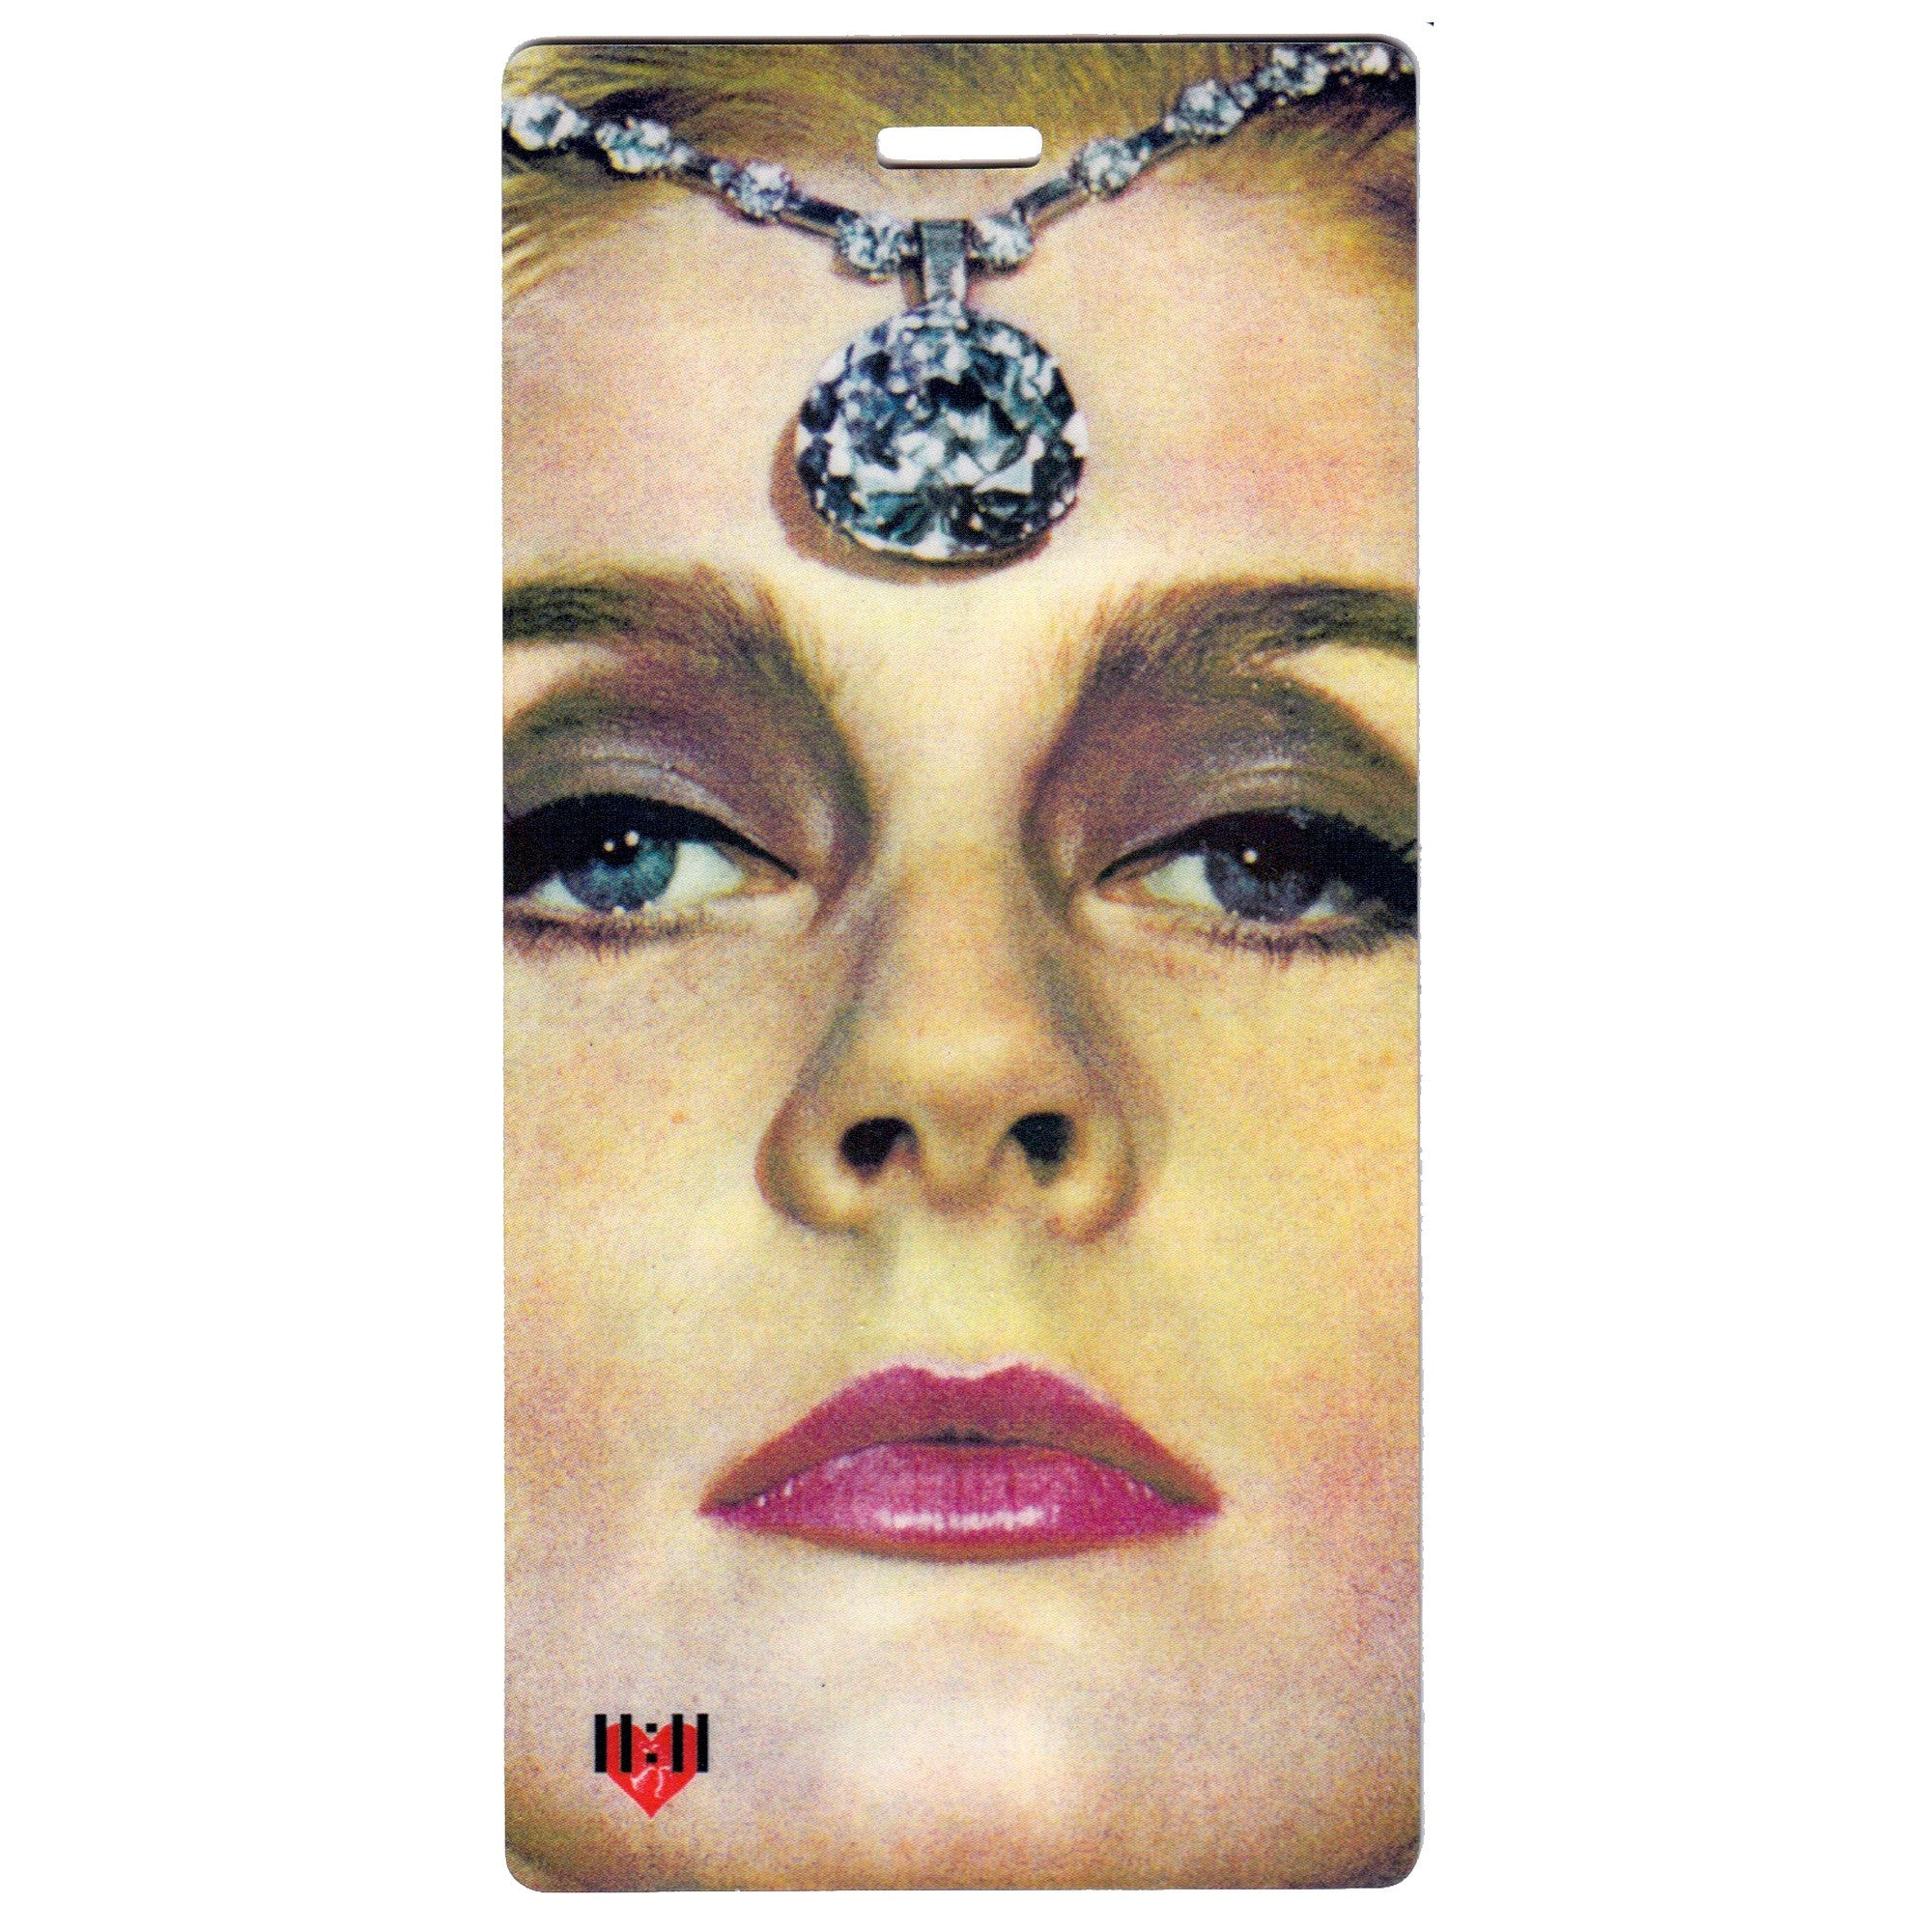 Diamond Lady Vintage Luggage Bag Tag Set - 2 pc, Large by 11:11 Enterprises